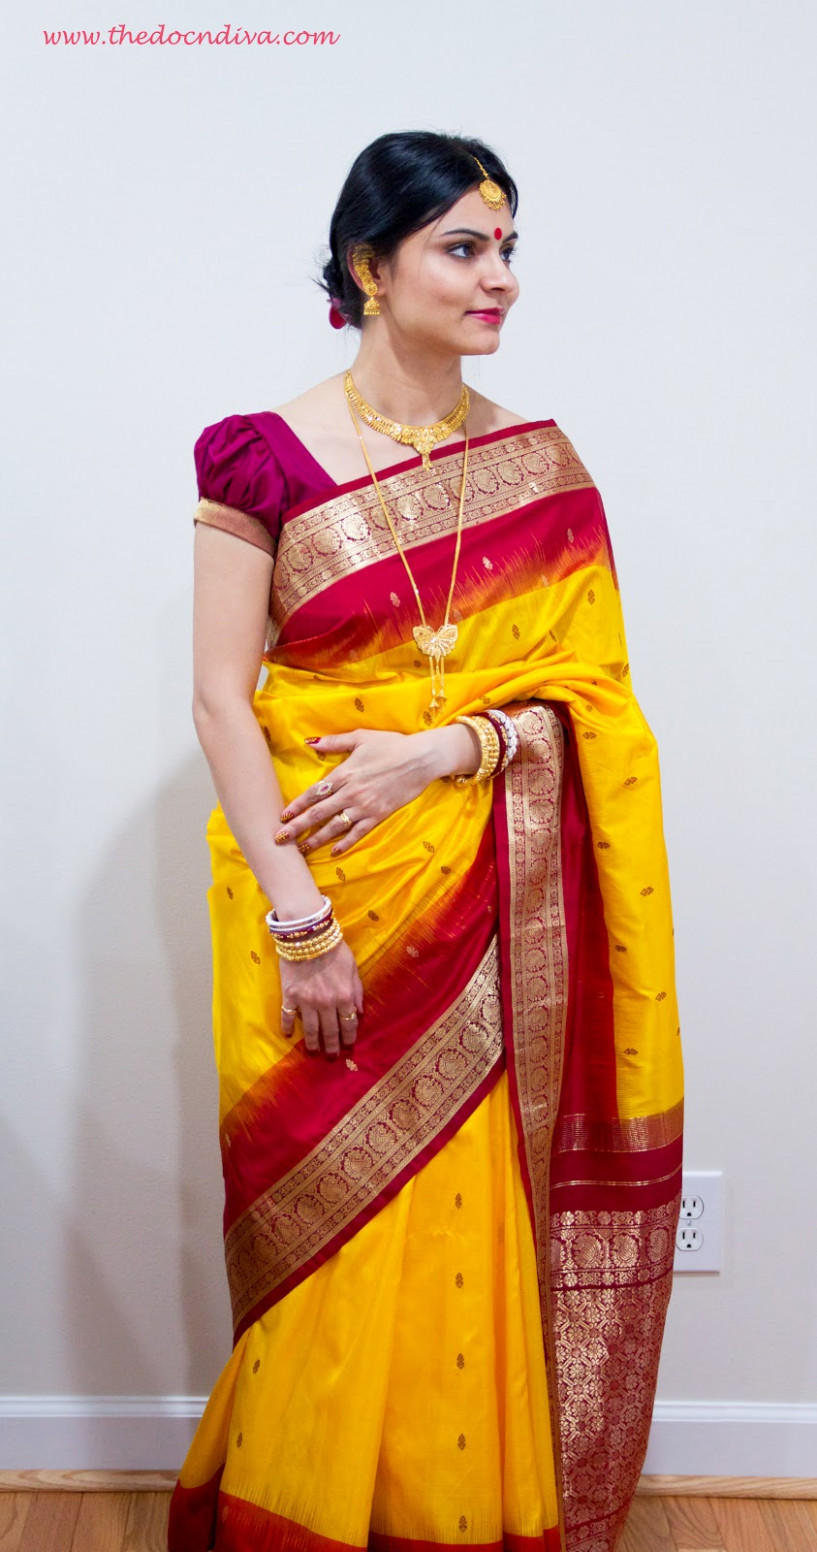 Saree as Outfit of the Day: Traditional Bengali Look